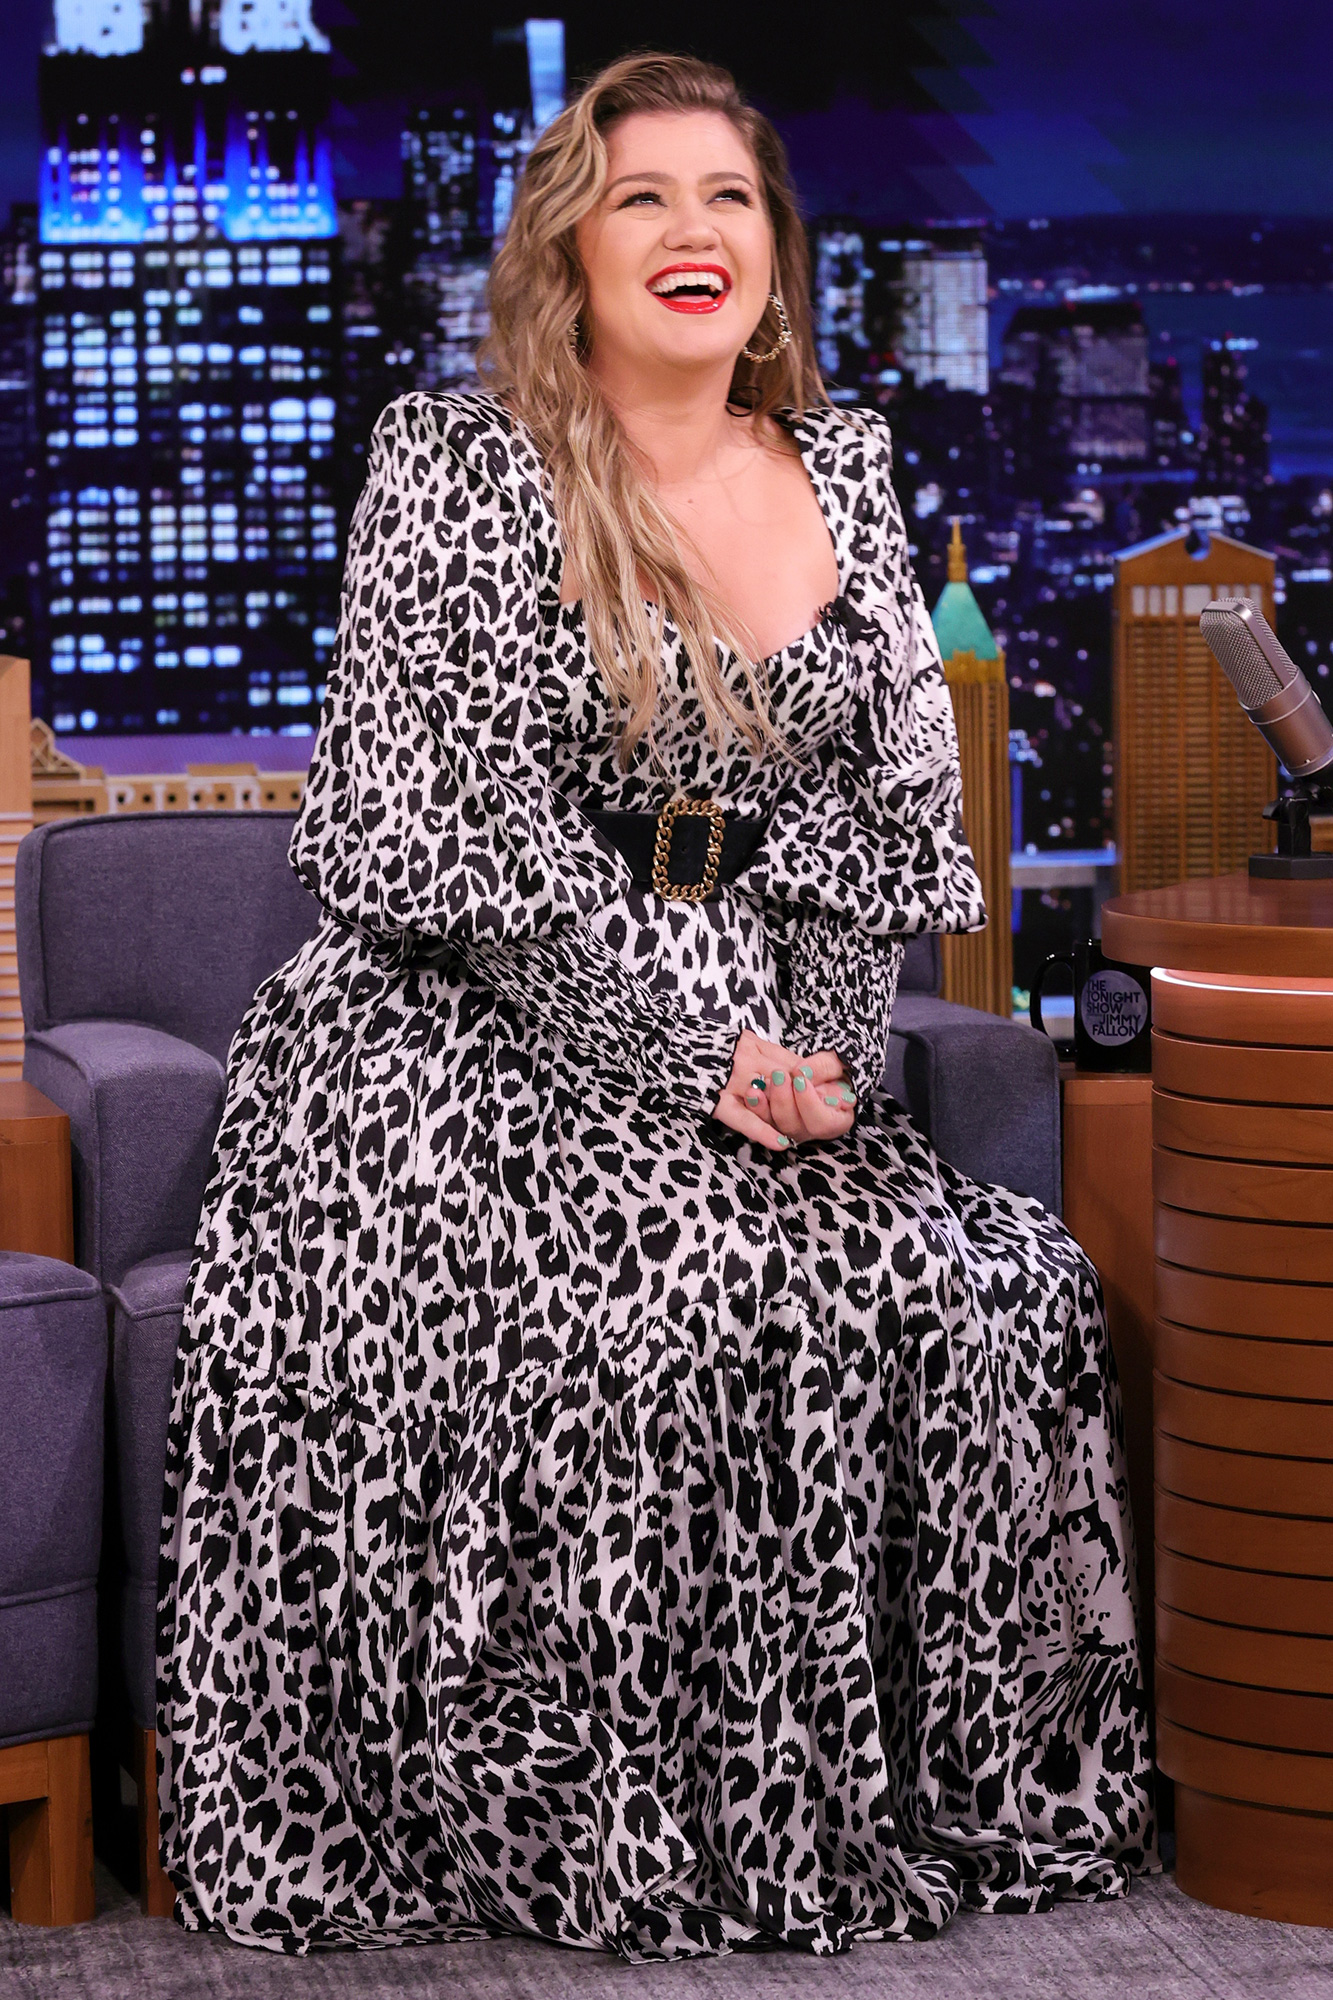 THE TONIGHT SHOW STARRING JIMMY FALLON -- Episode 1505 -- Pictured: Singer Kelly Clarkson during an interview on Monday, August 23, 2021